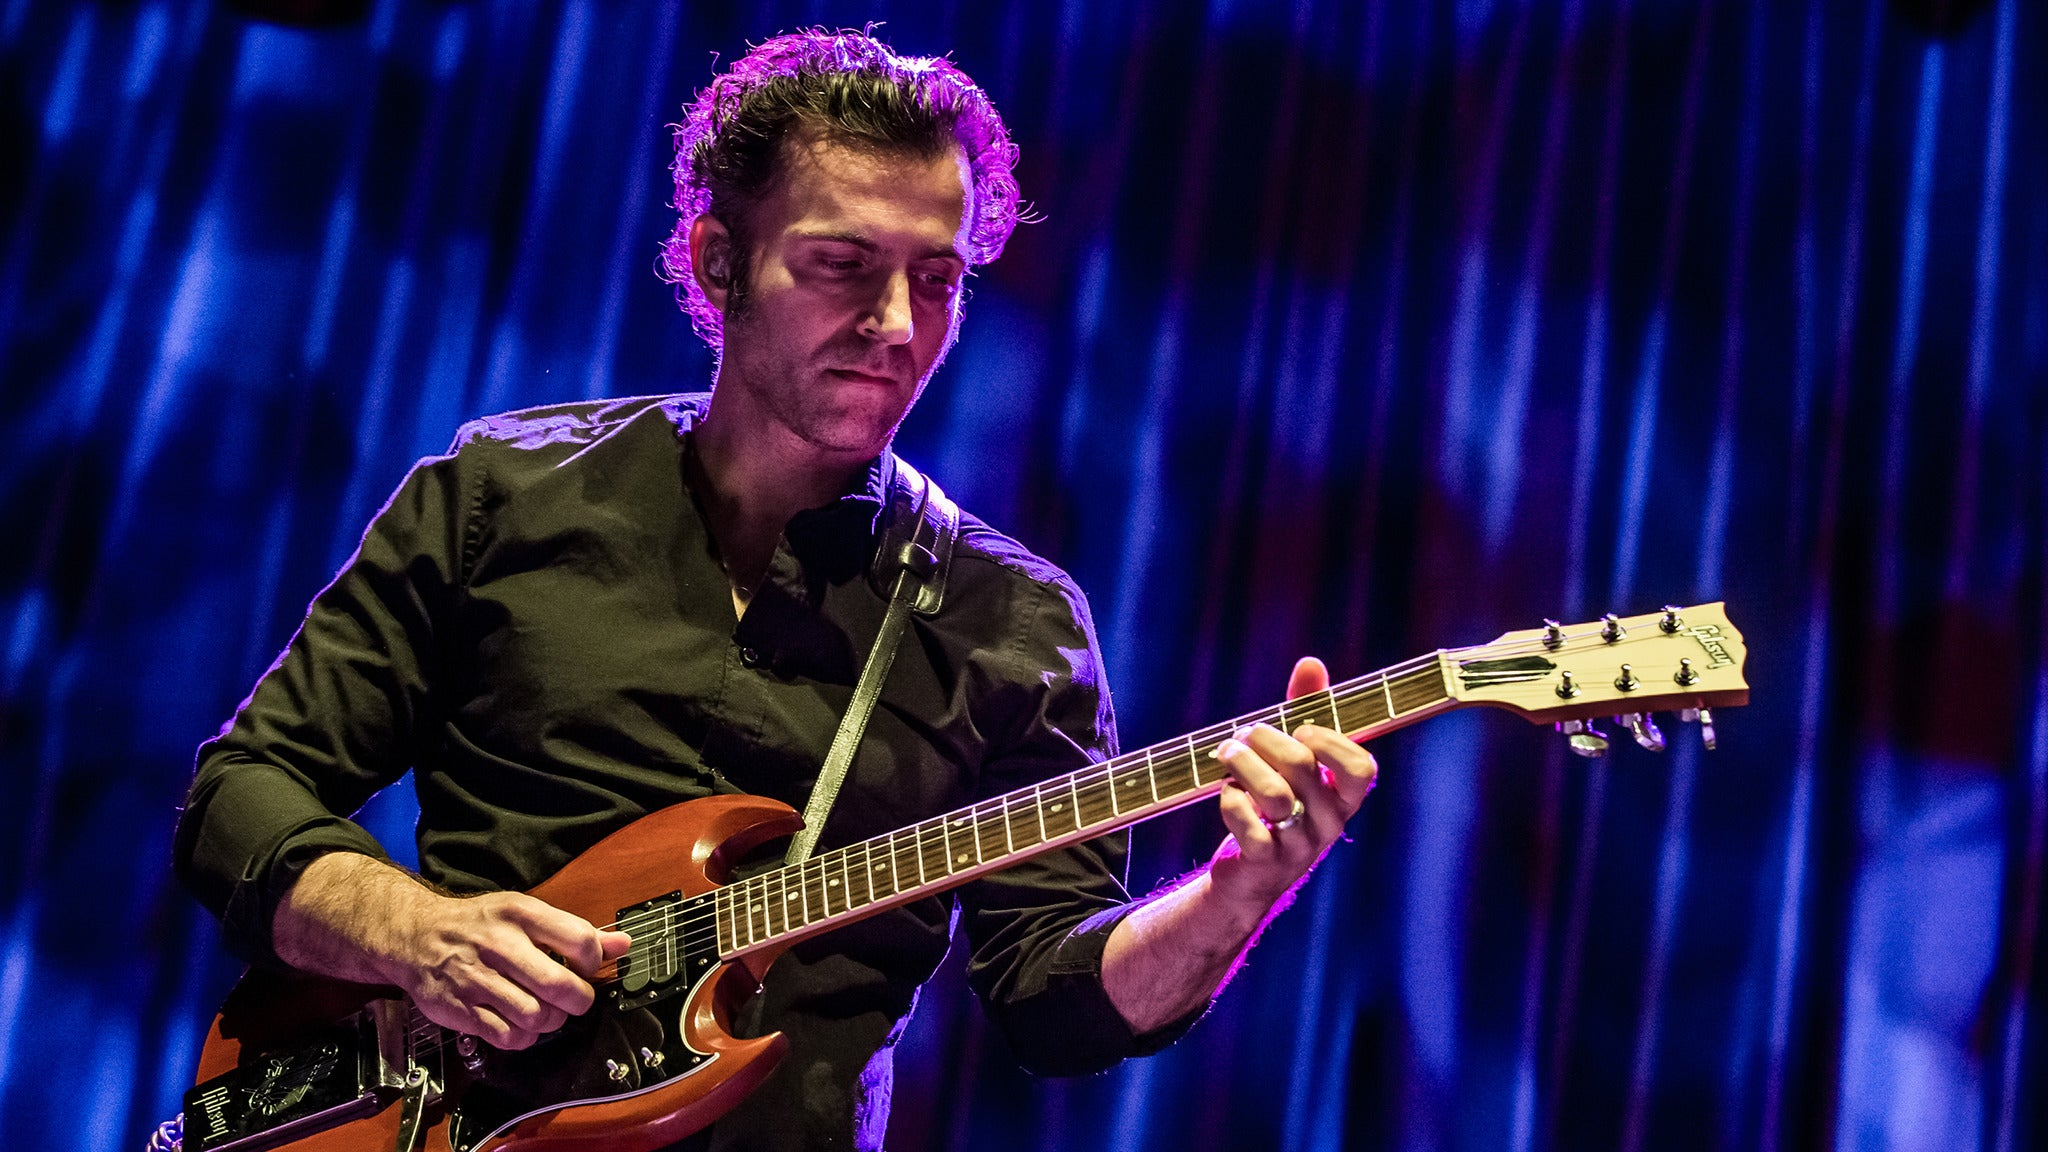 Dweezil Zappa at Ridgefield Playhouse